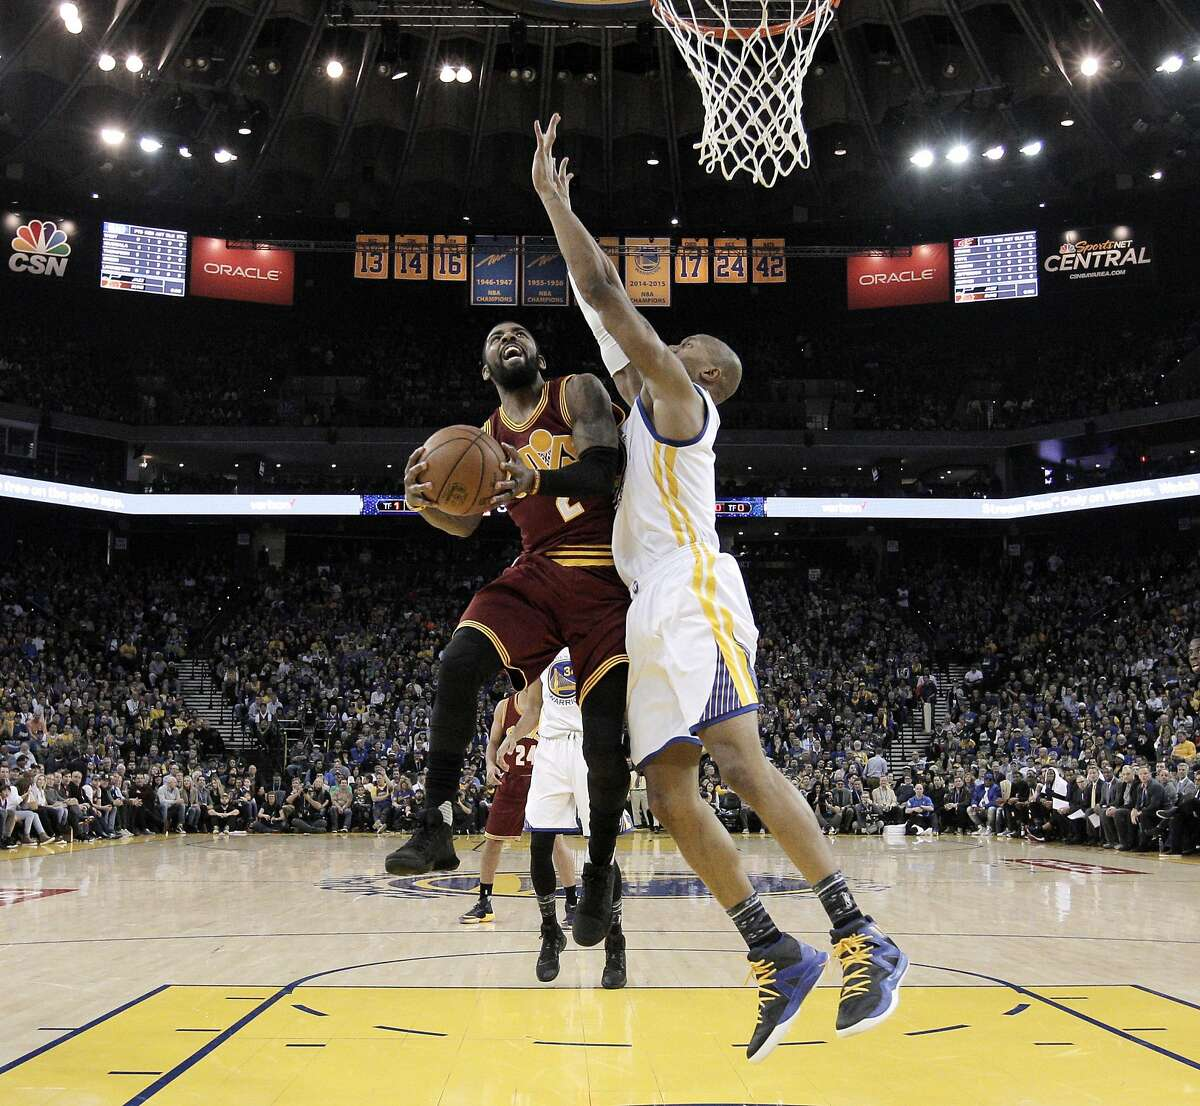 Kyrie Irving (2) drives to the basket defended by David West (3) in the first half as the Golden State Warriors played the Cleveland Cavaliers at Oracle Arena in Oakland, Calif., on Monday, January 16, 2017.